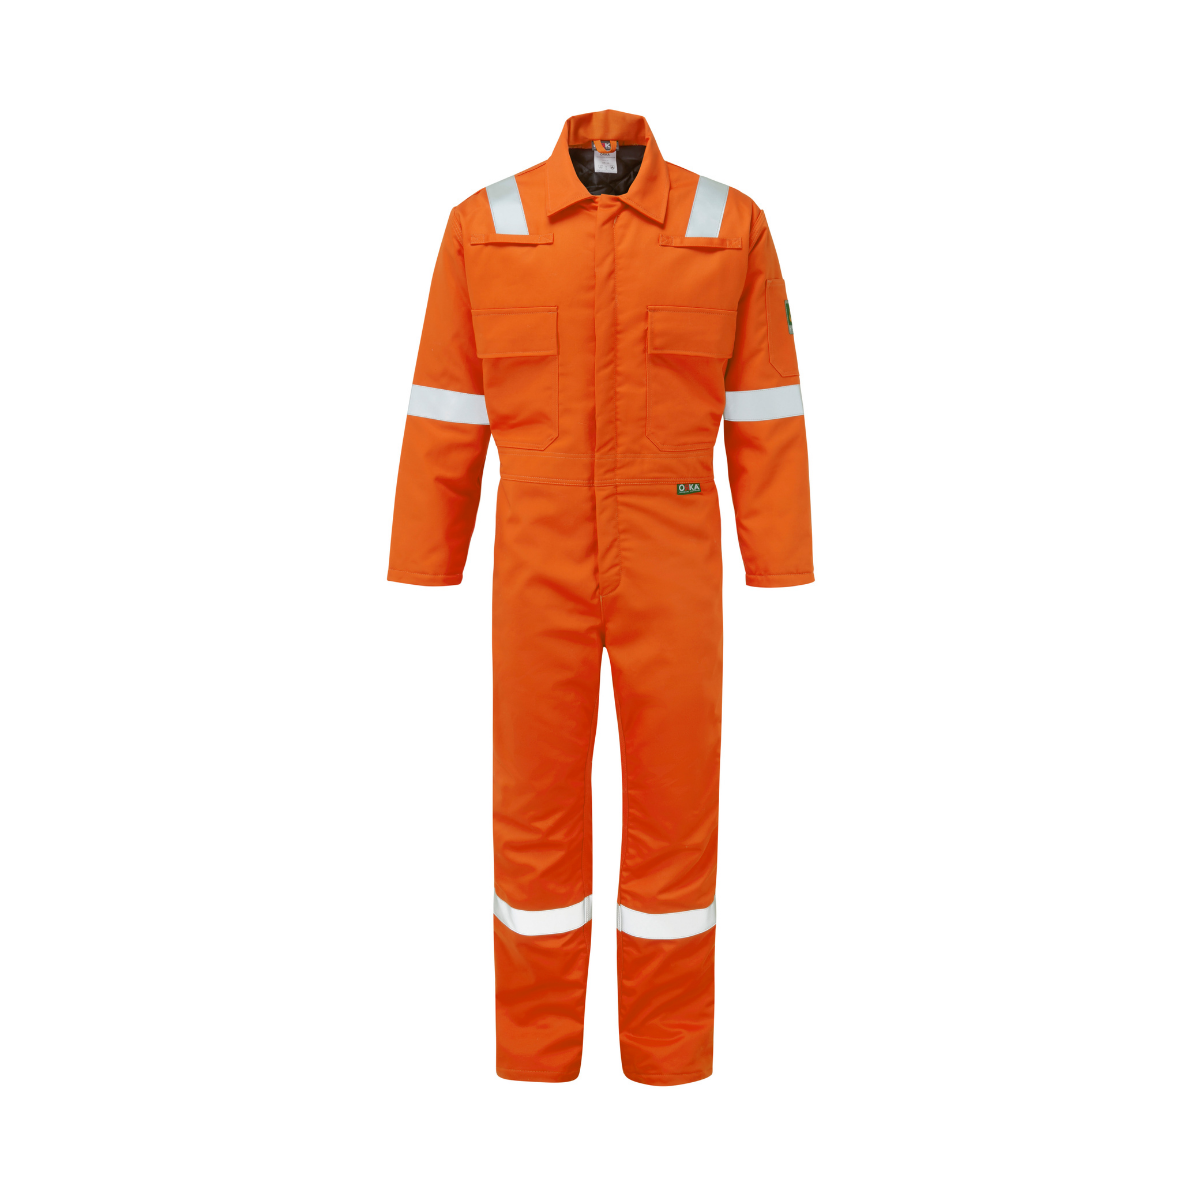 FR7336_ORKA Flametherm Cold Weather Coverall